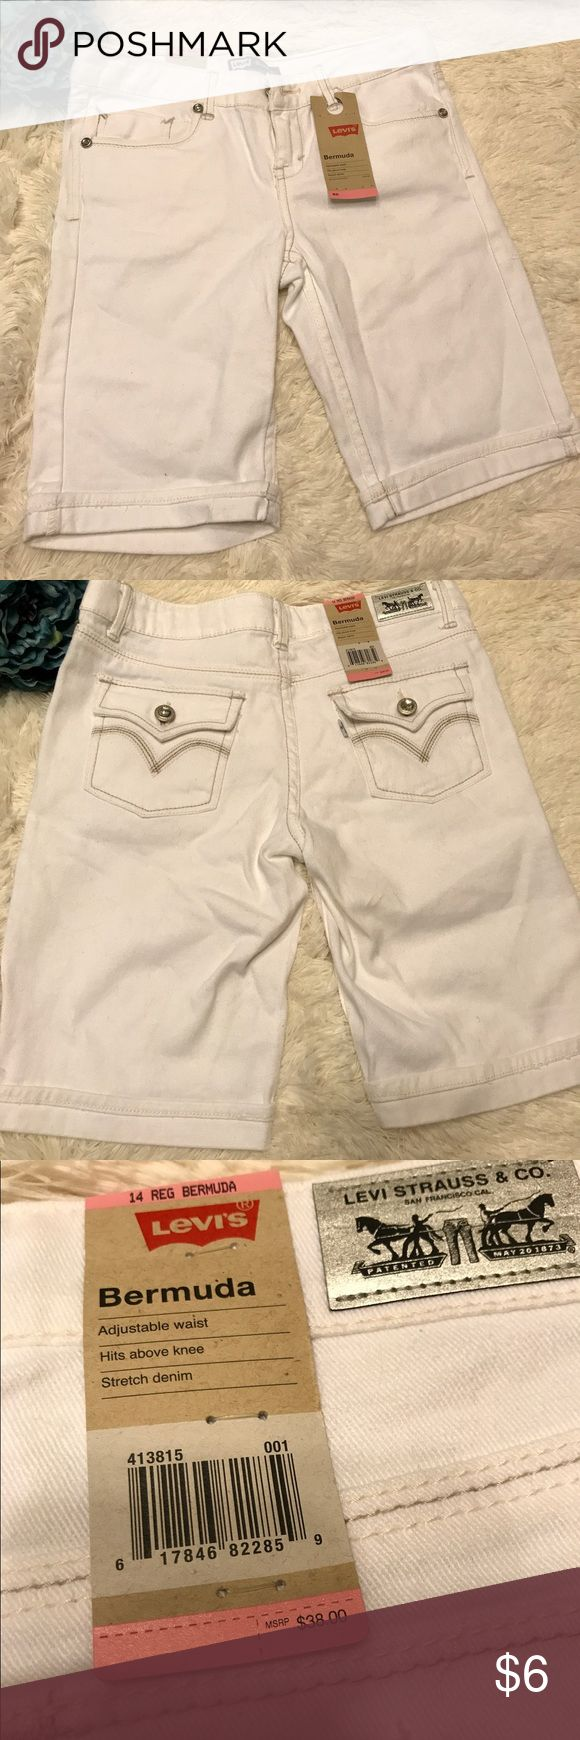 Girls Levi's Bermuda shorts My daughter never wore these ... just packed away in a drawer - cute white shorts for summer time - comes from smoke free home Levi's Bottoms Shorts